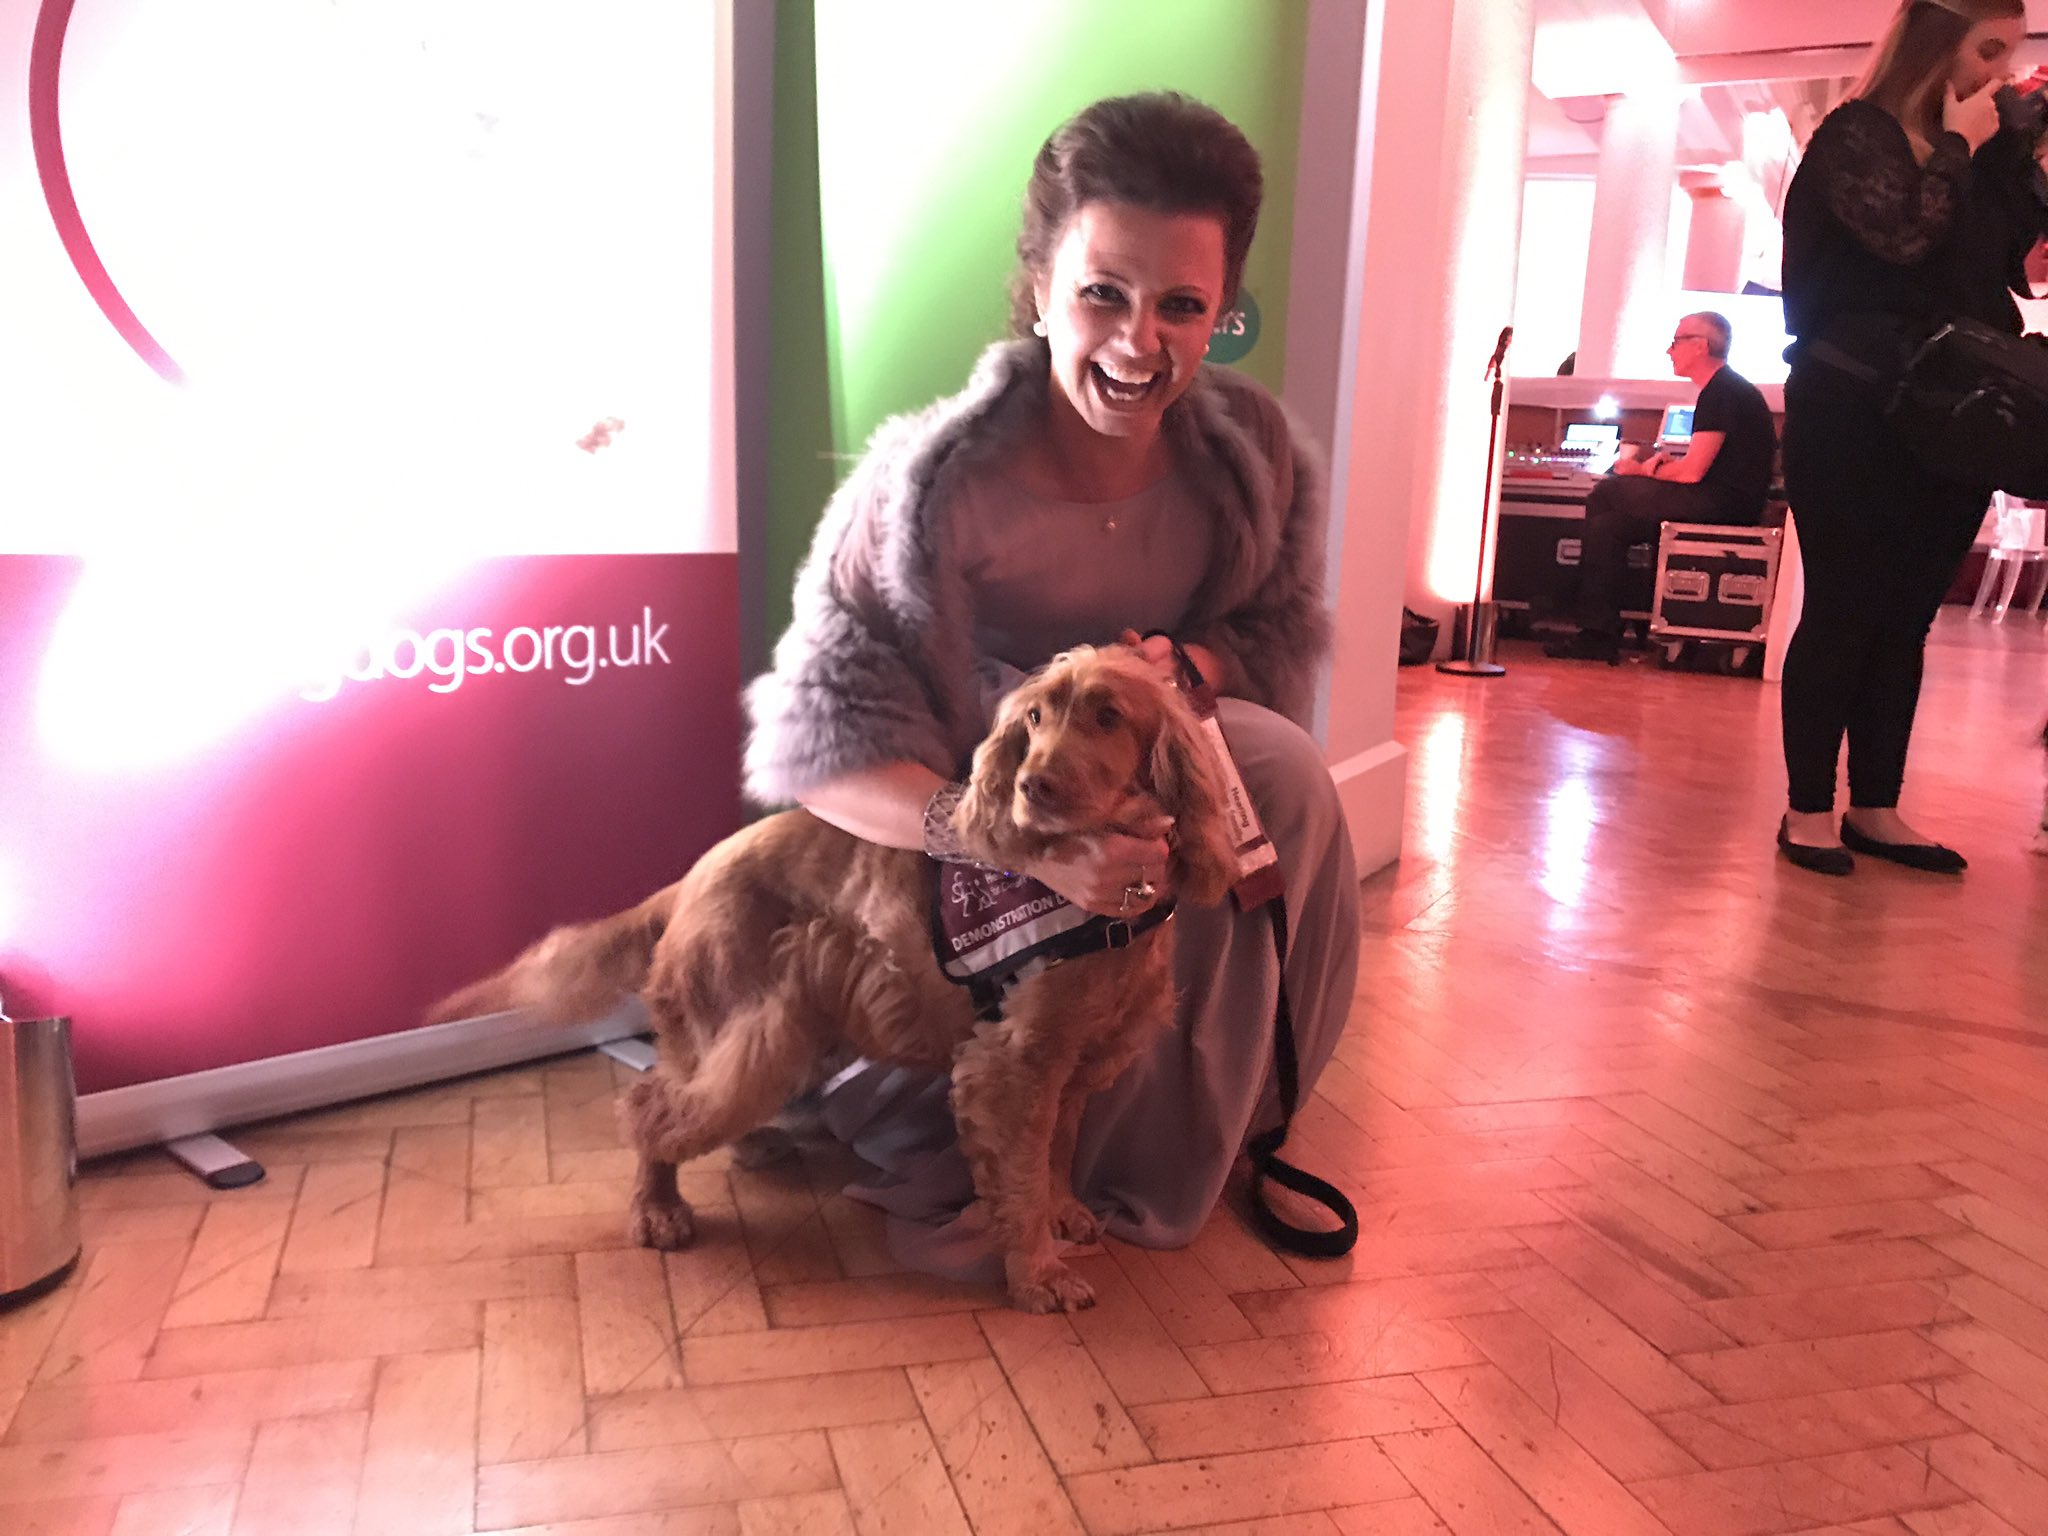 RT @HearingDogs: Karen Hardy from @bbcstrictly enjoyed a cuddle from demonstration dog Rose! #hearingdogsawards https://t.co/Wc8LbBVPCp